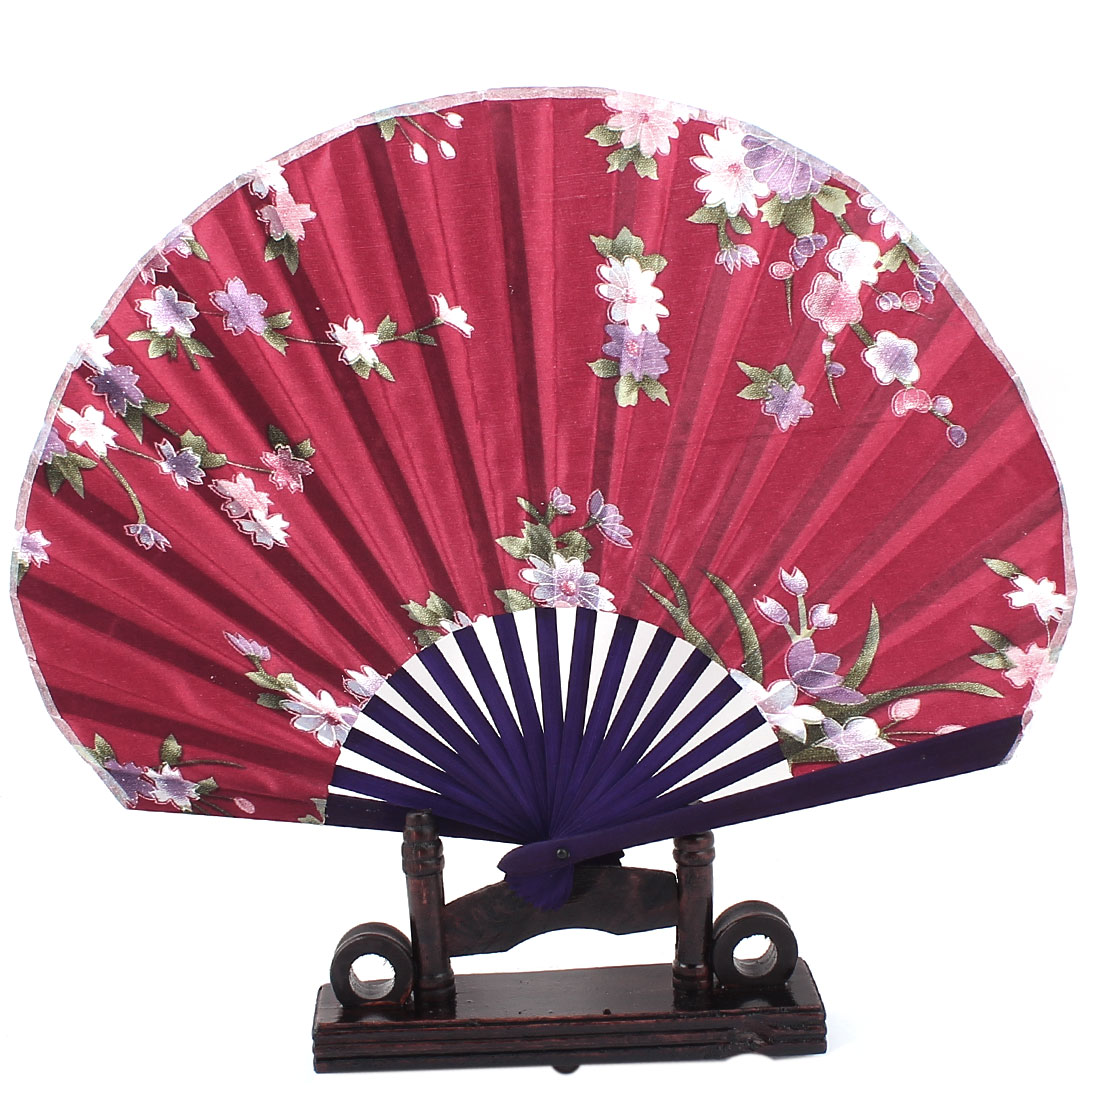 Chinese Painting Peach Floral Wood Folding Hand Fan Burgundy w Display Holder